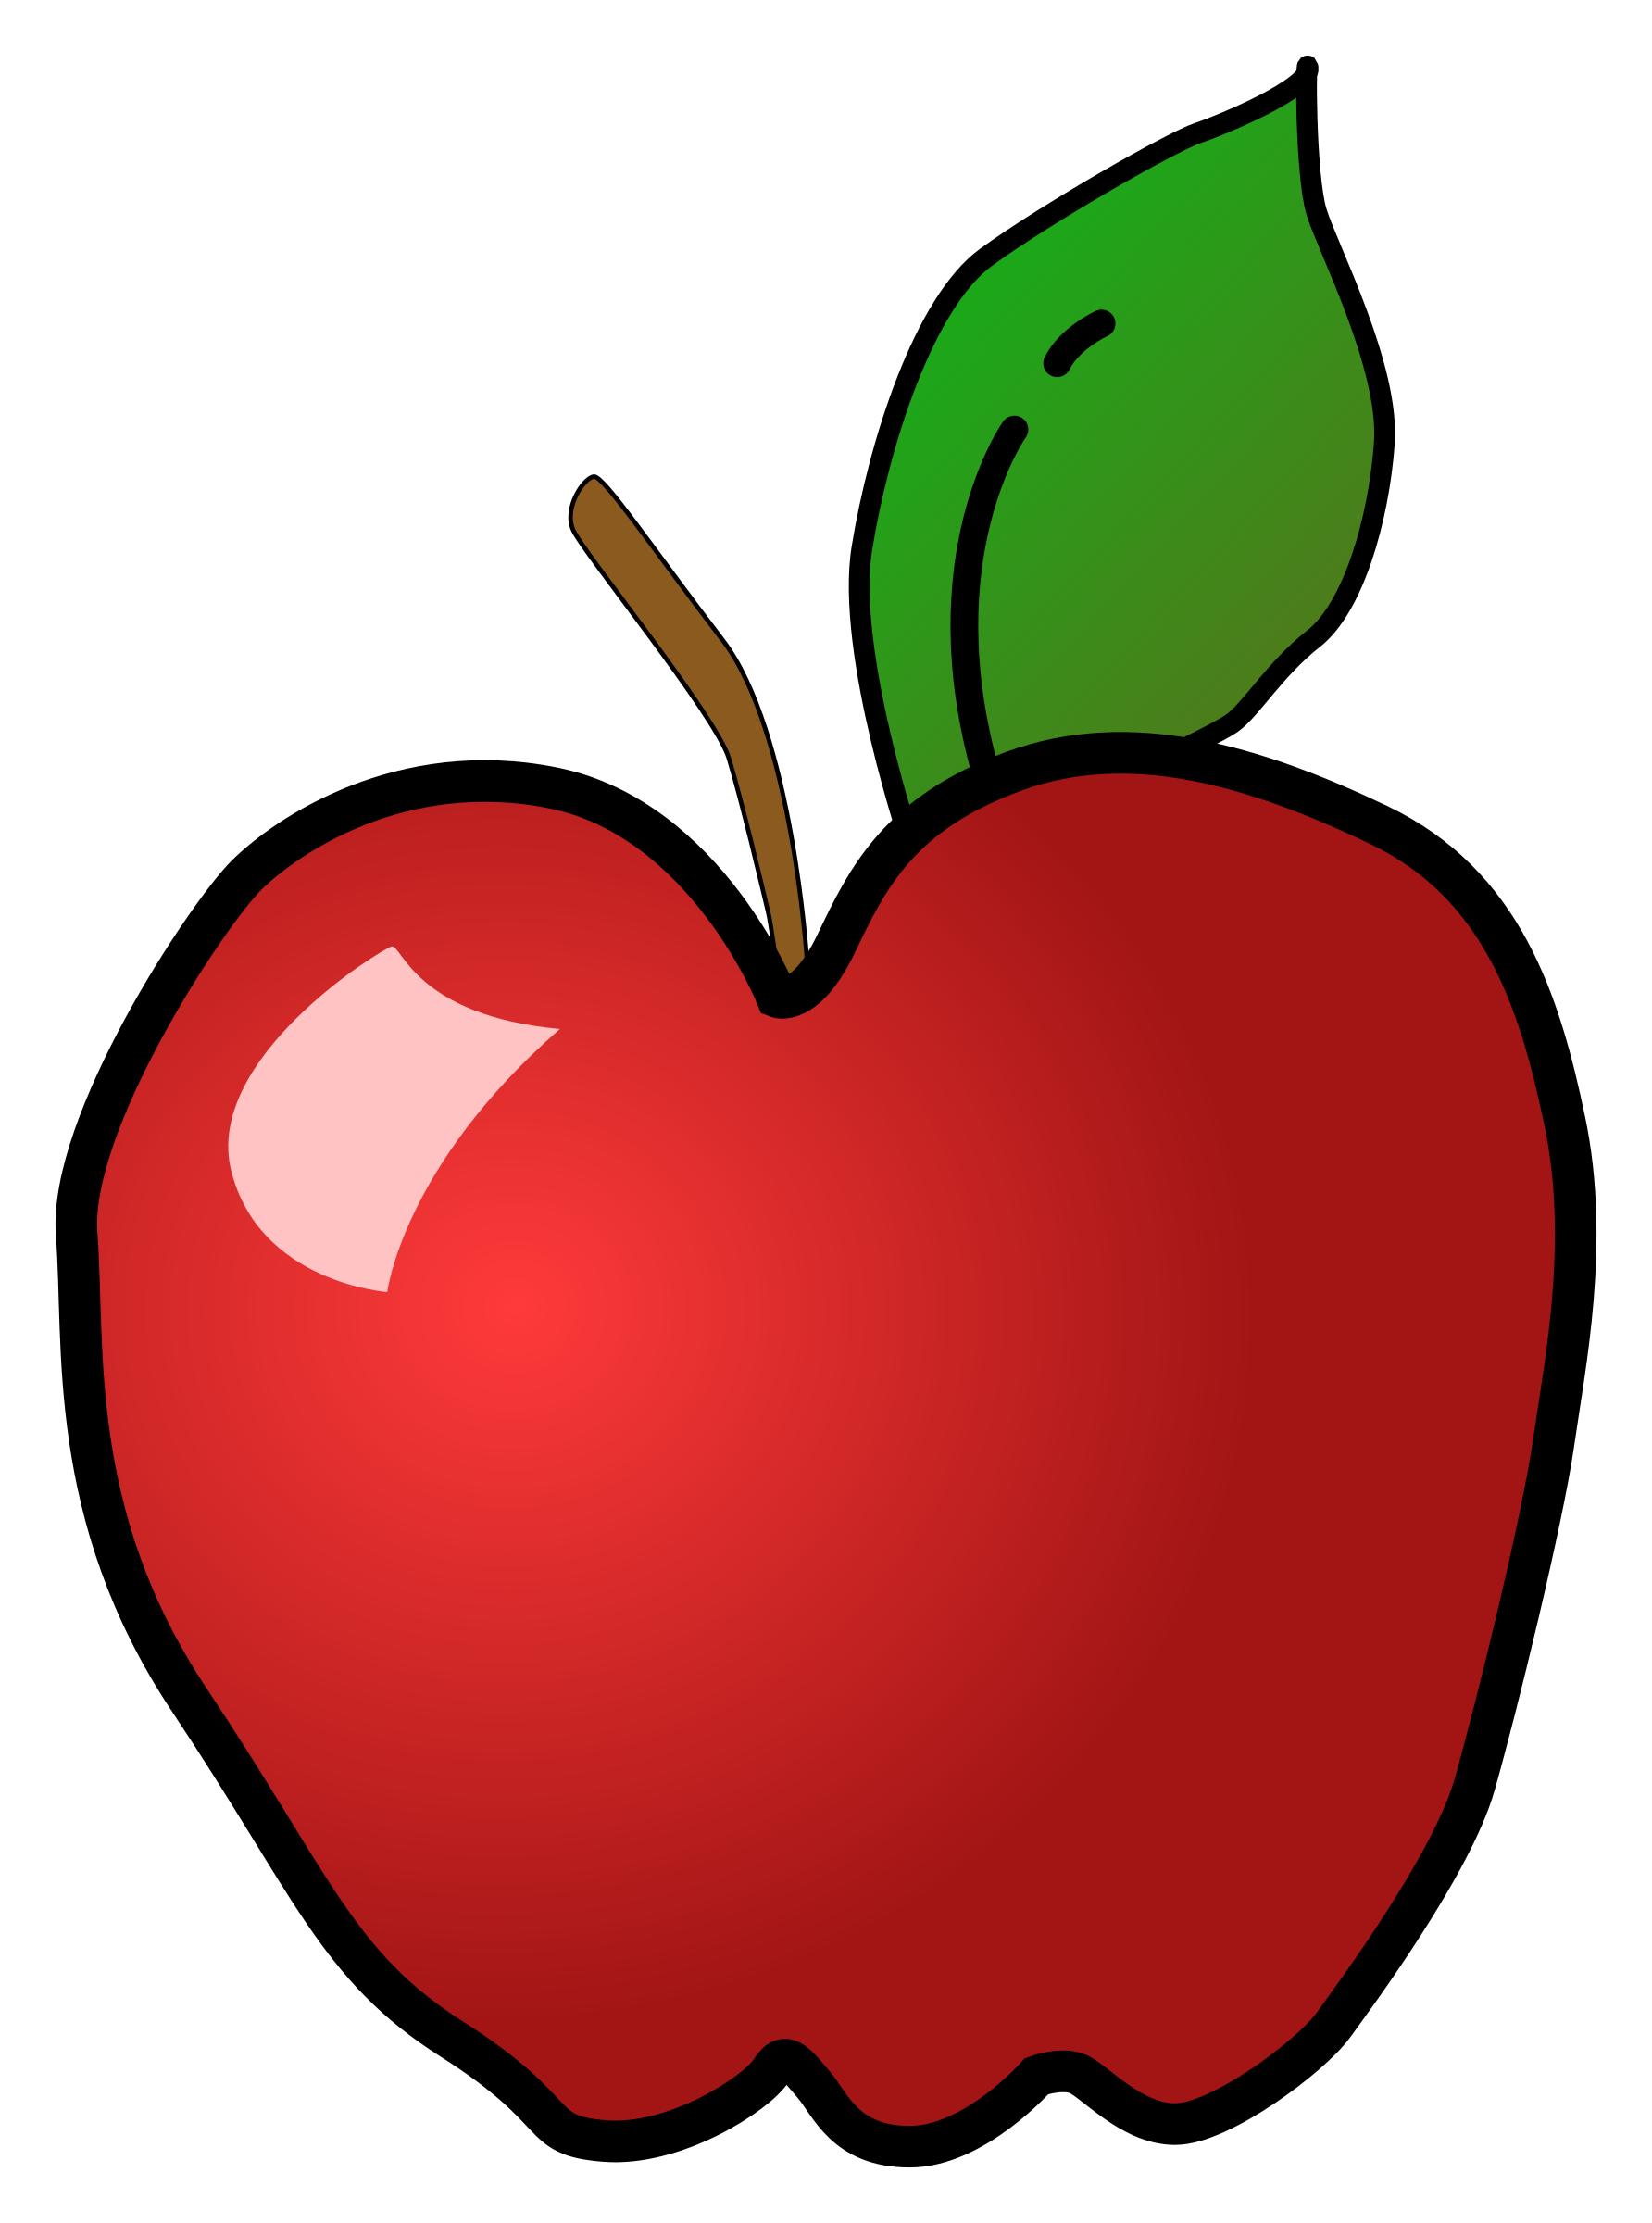 Study clipart strong student. Polished apple icons png